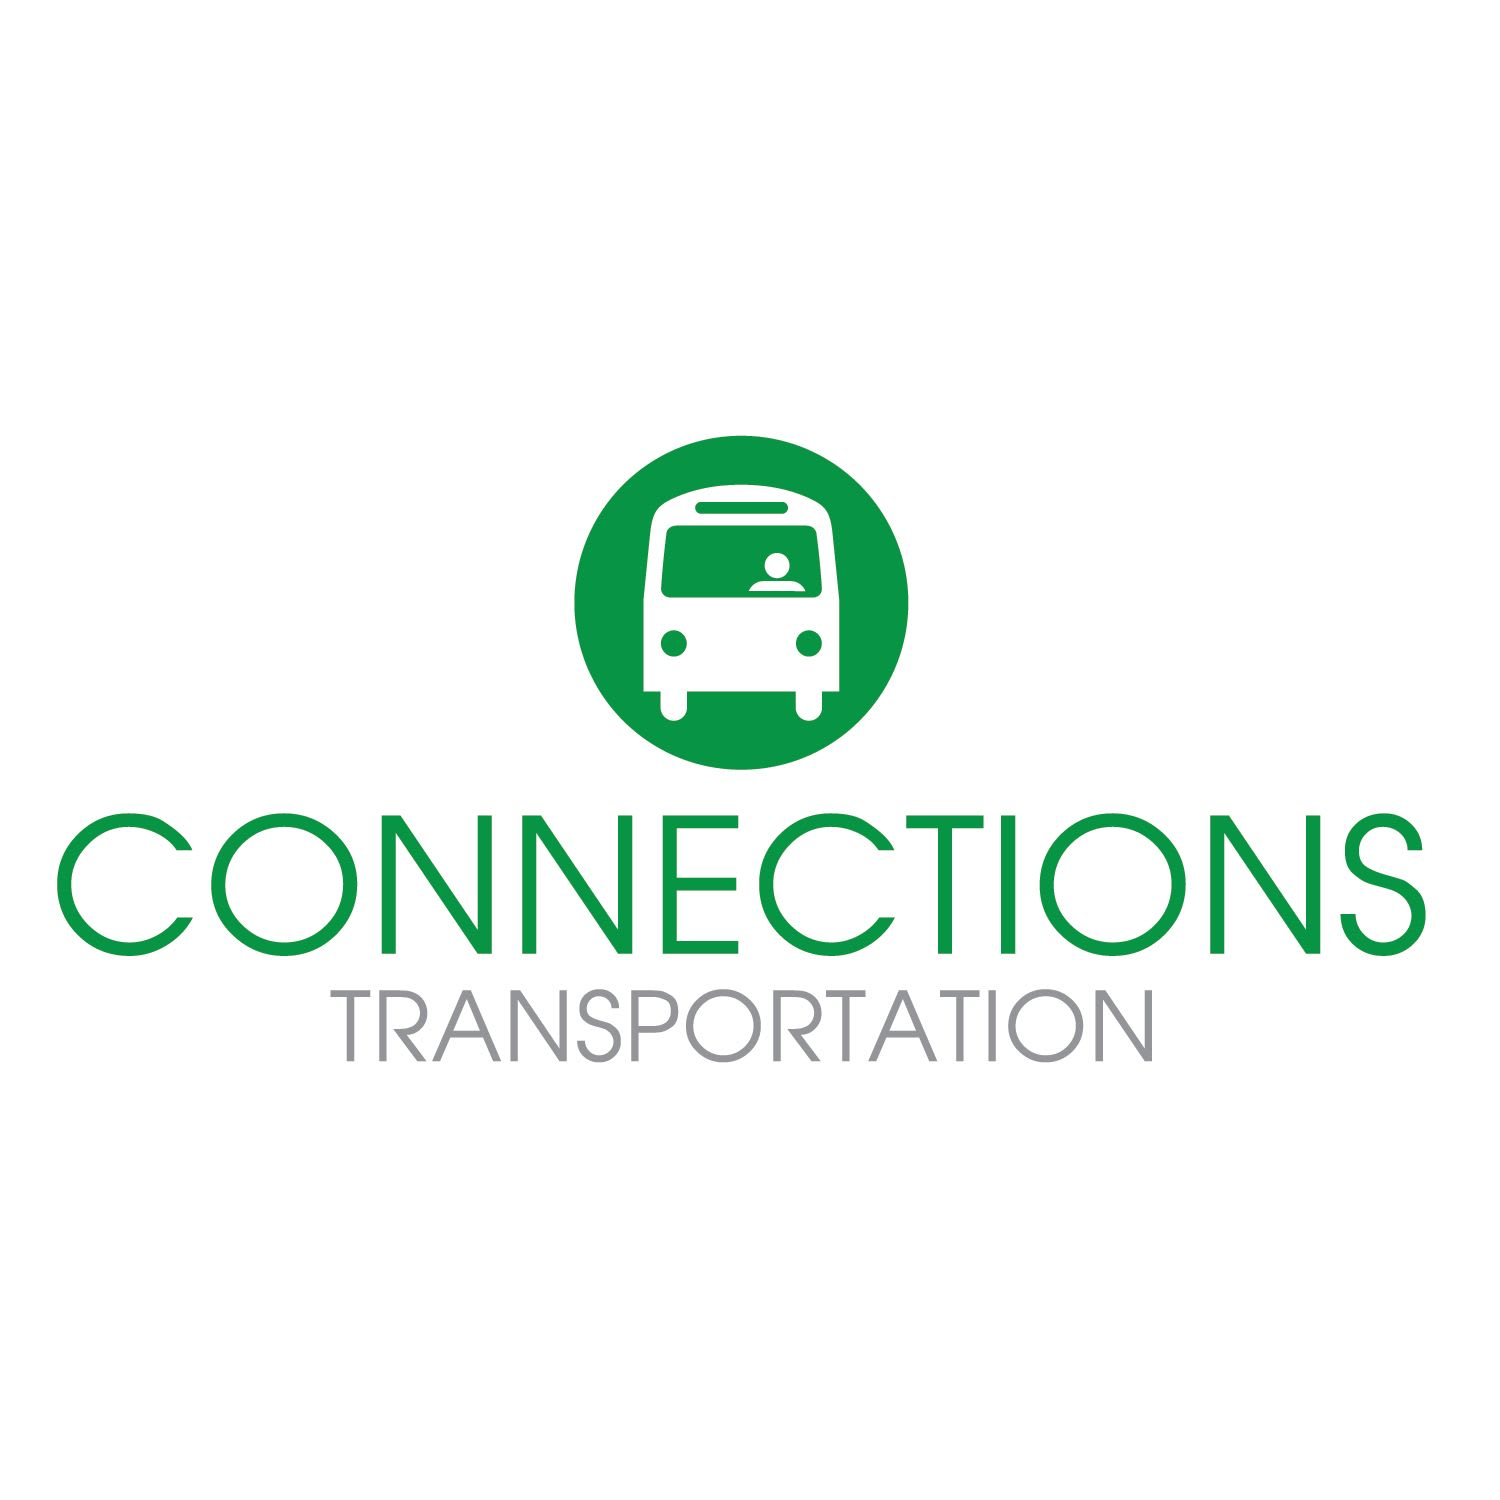 Senior living connections in Florida for transportation and maintenance.